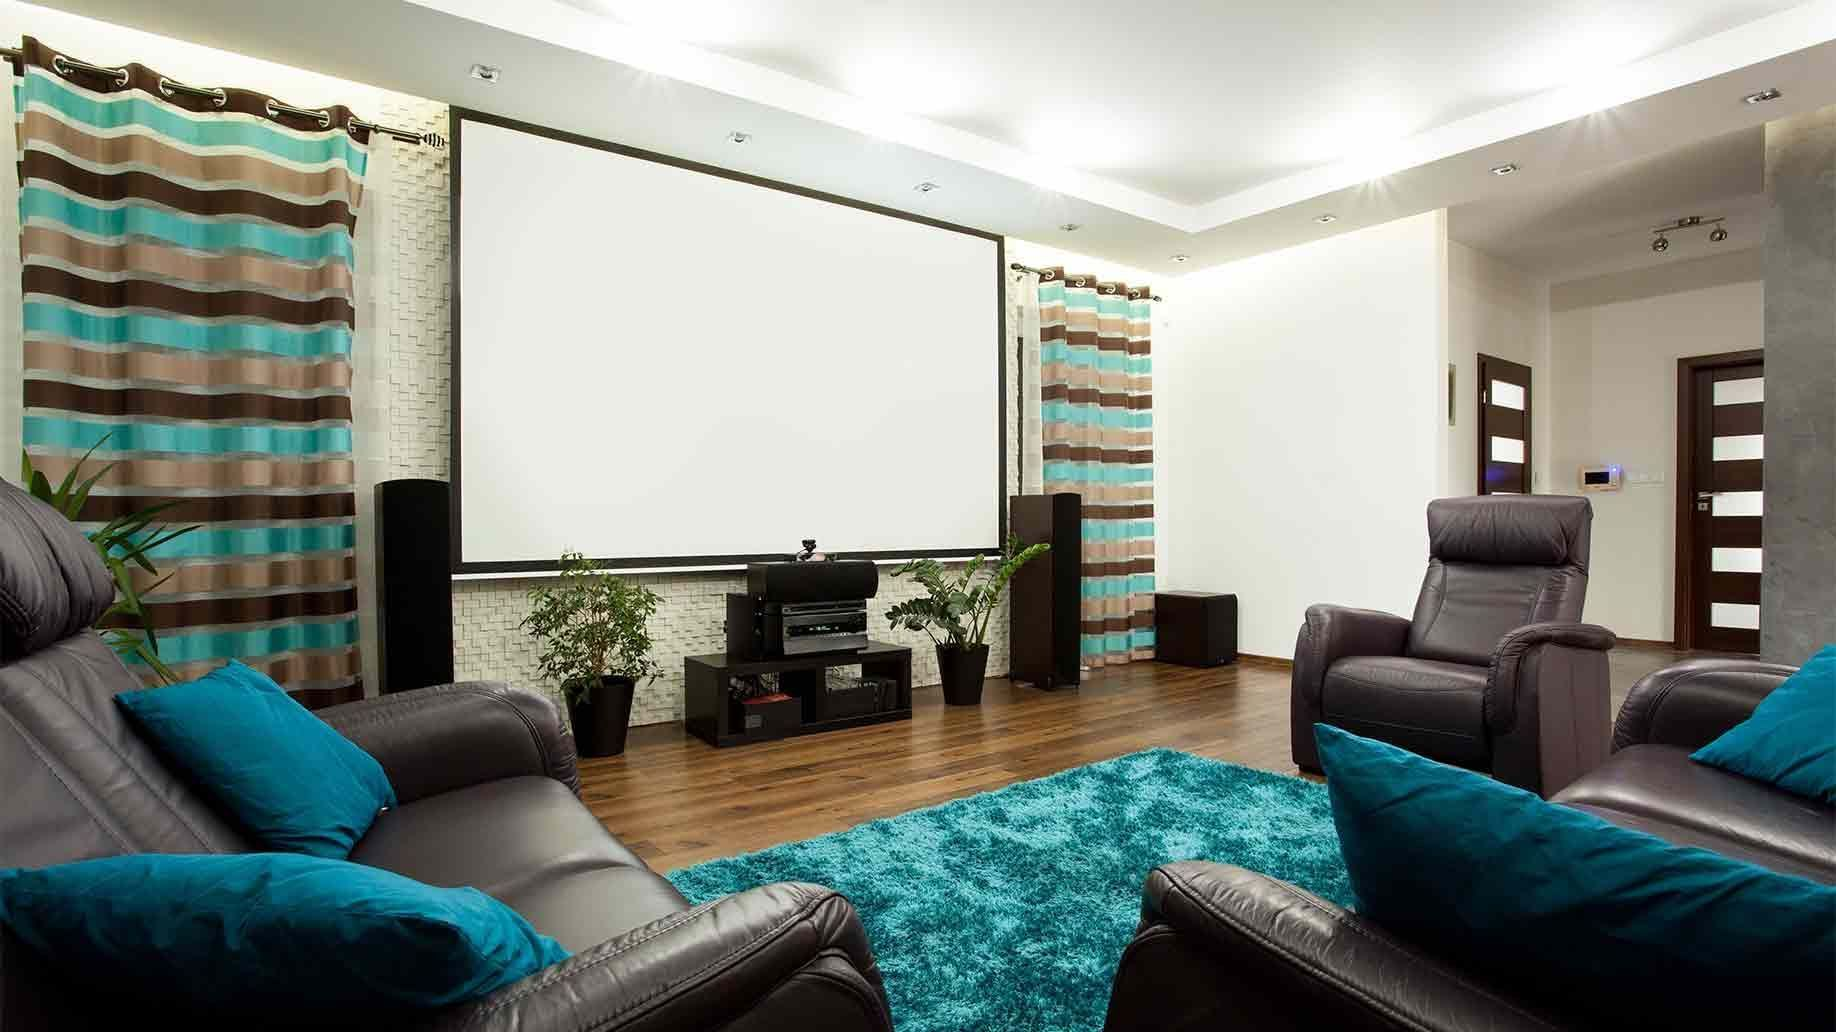 How To Build A Home Movie Theater Room On A Budget  # Meuble Home Cinema Diy